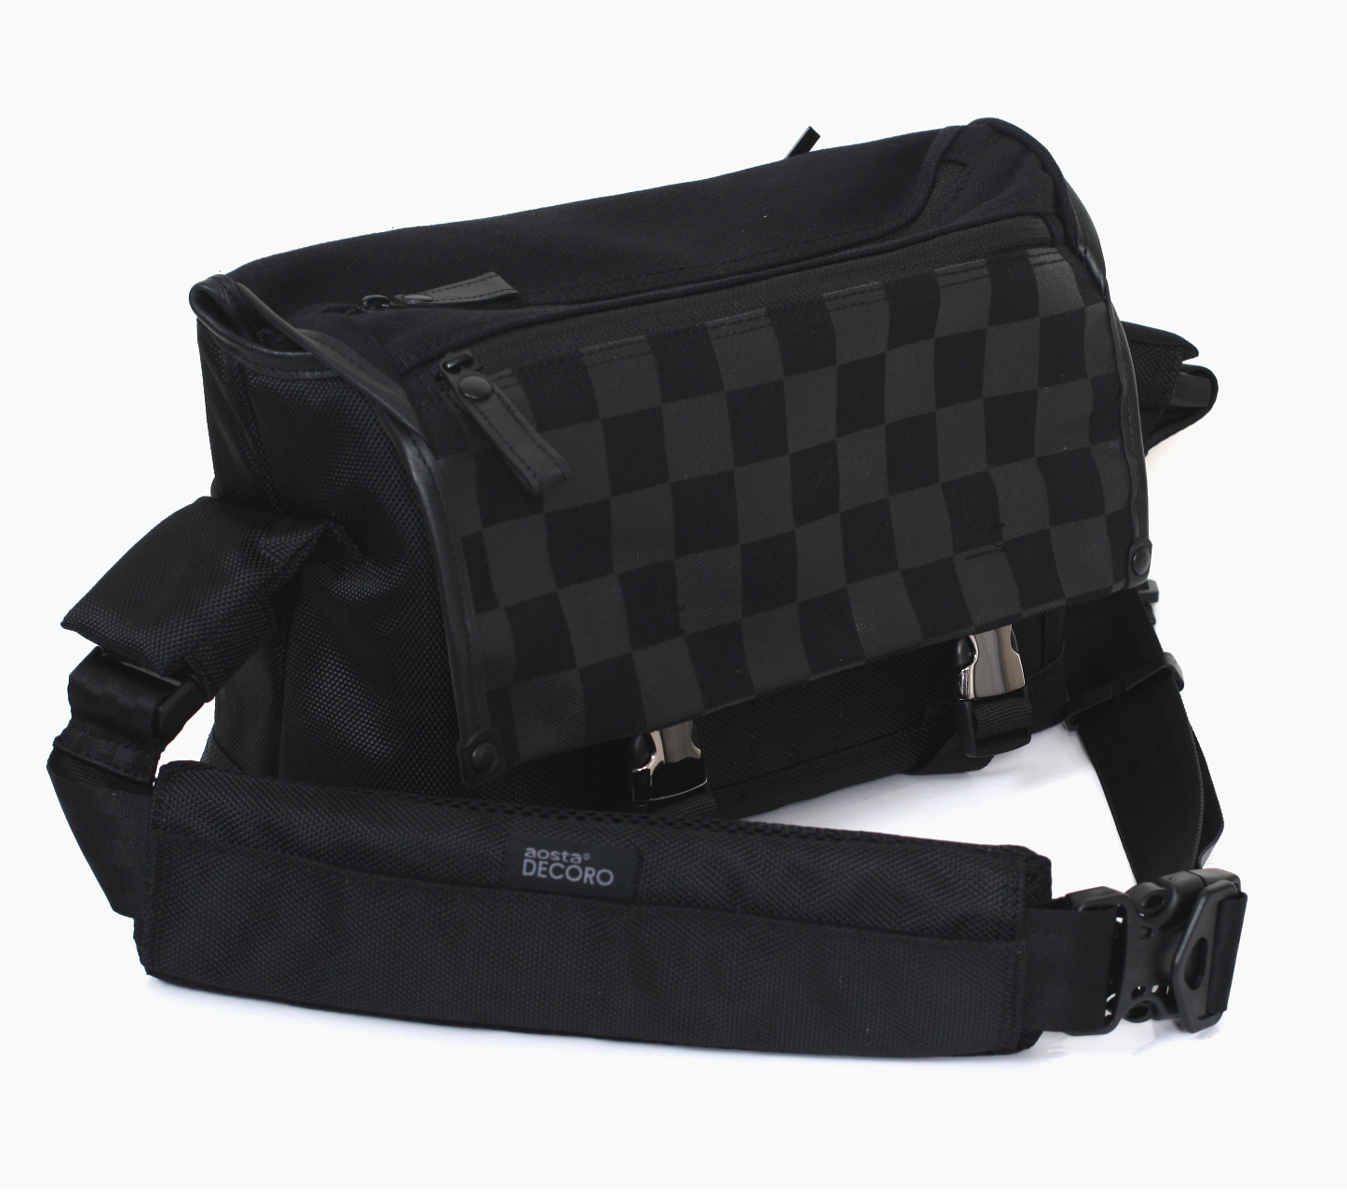 "Aosta デコーロ M AOS-DC1SHM-BK ""1 ~ 3 business days after shipping, the impressive shoulder camera bag is a checkerboard design. Camera bag that can store accessories with lens digital SLR, lens 1 book,. The fs3gm"